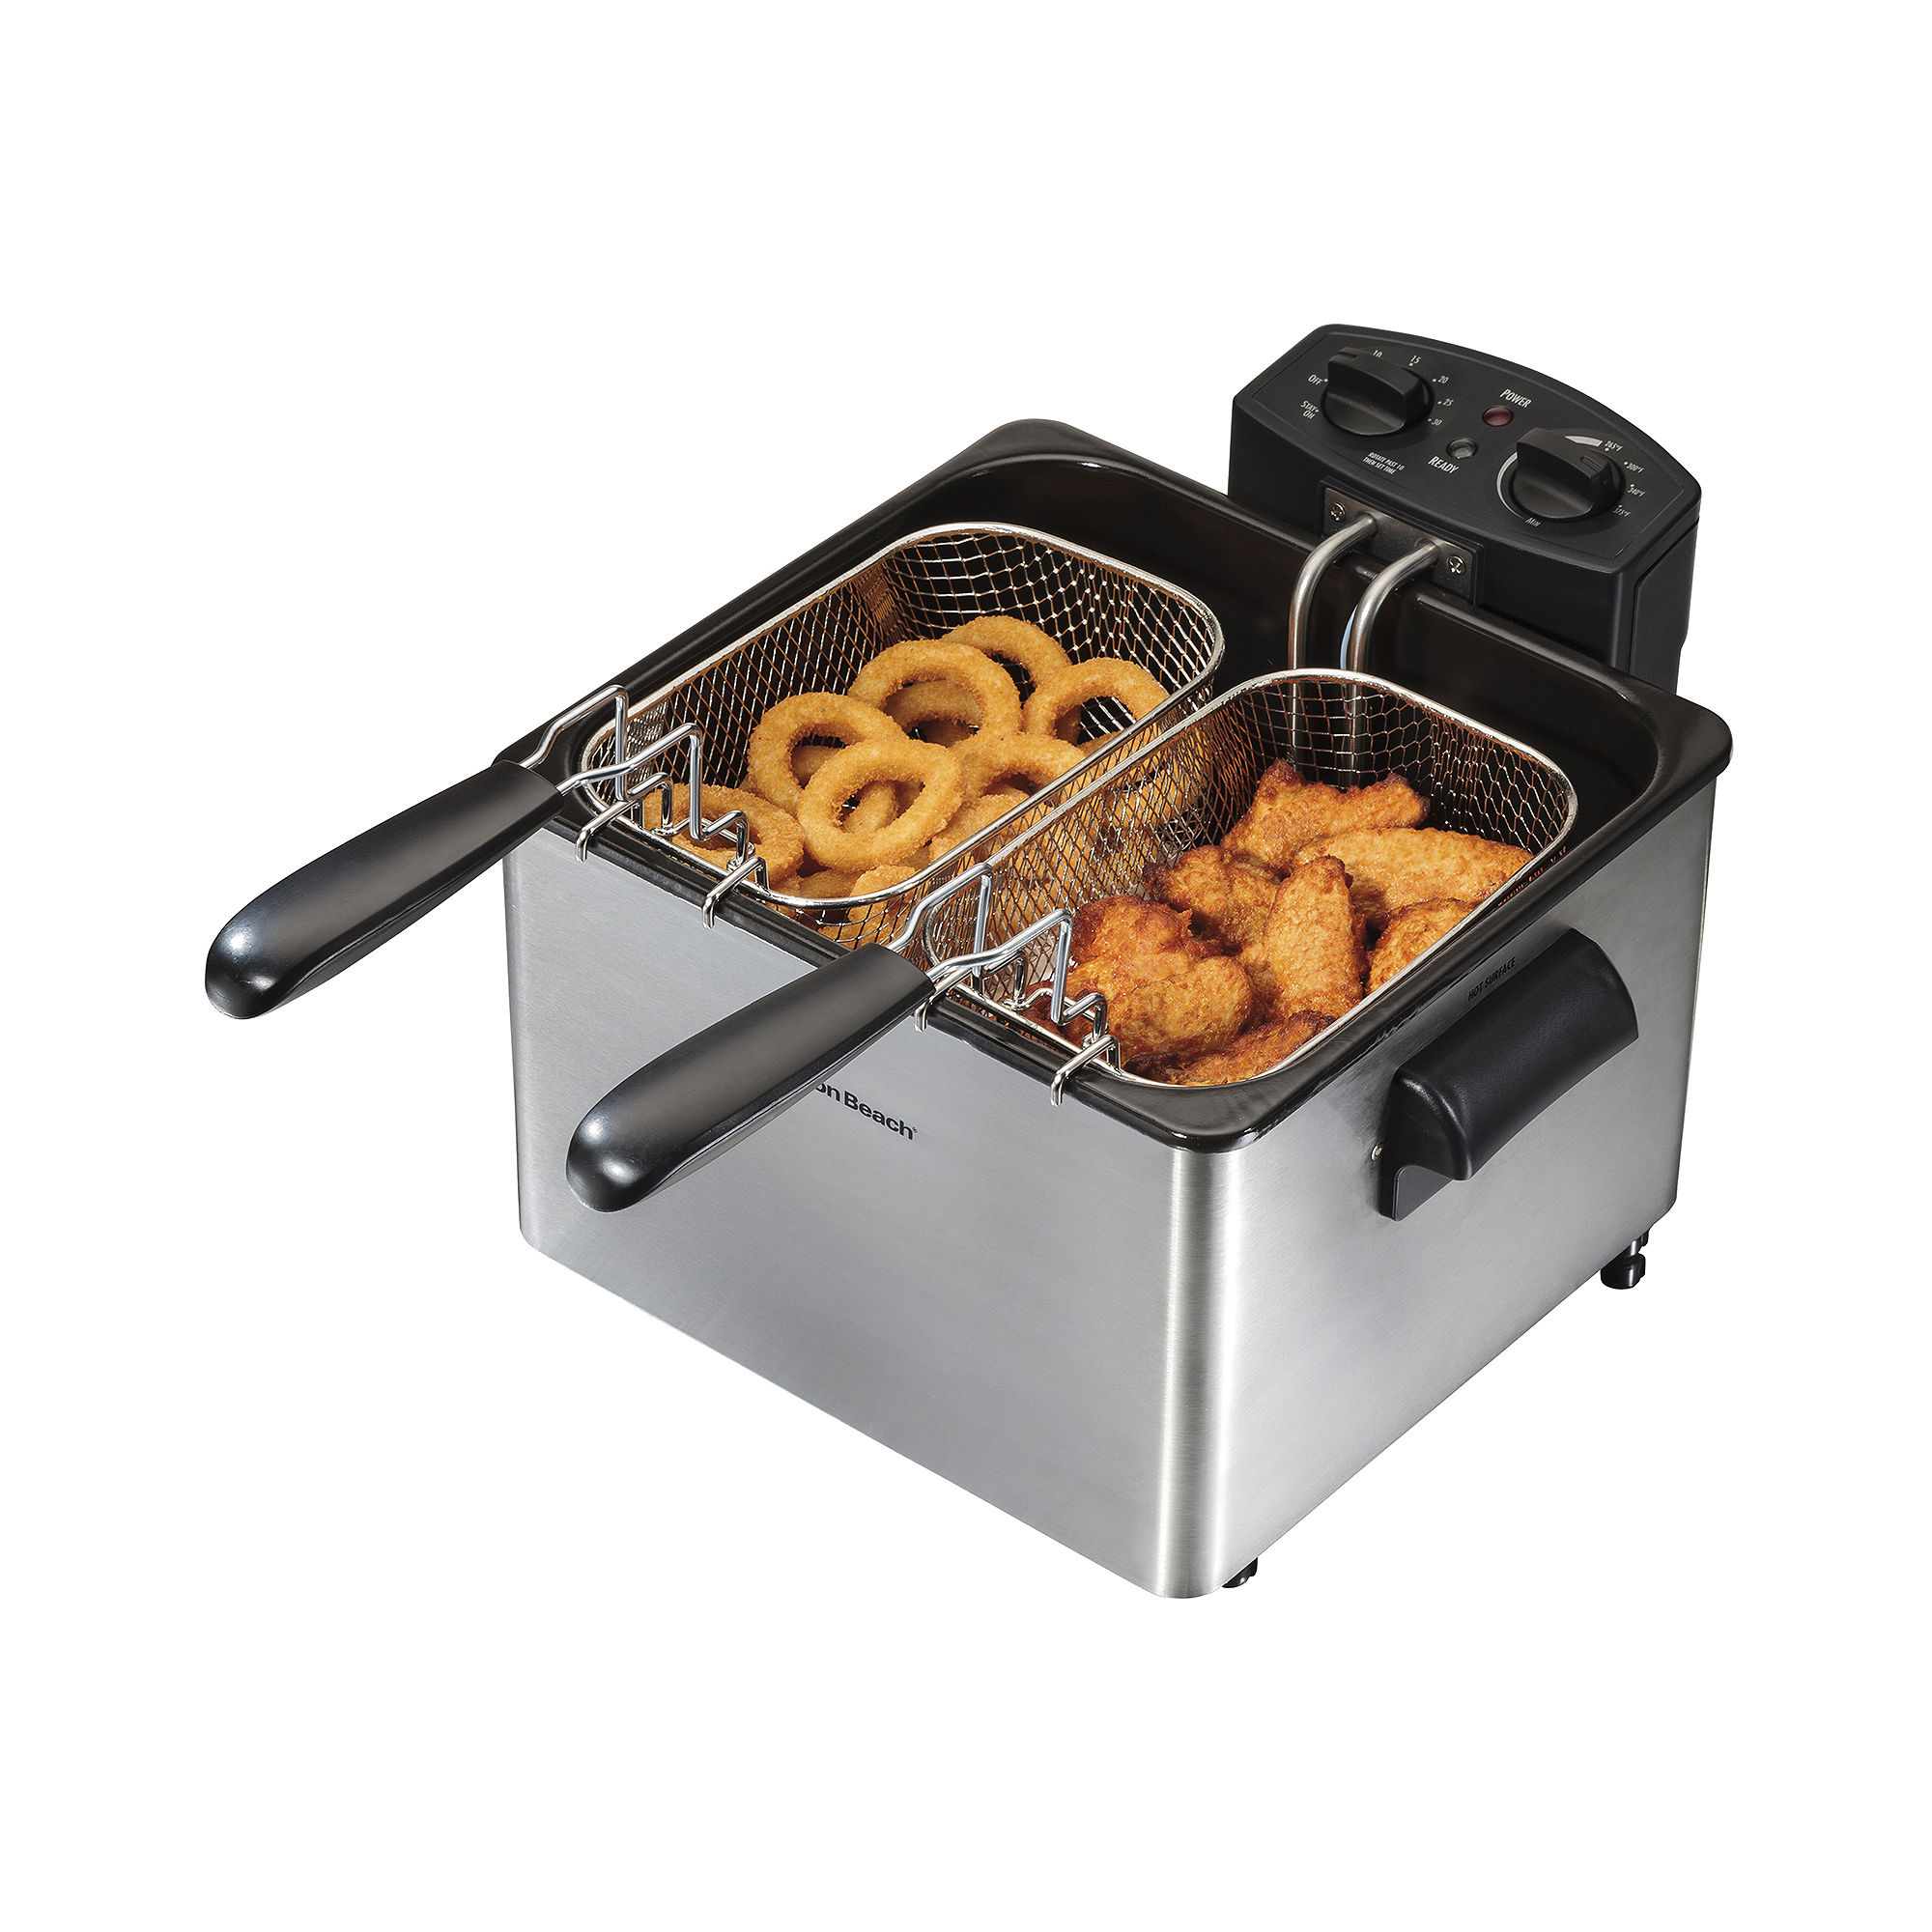 Hamilton Beach Professional-Style Deep Fryer with 2 Baskets